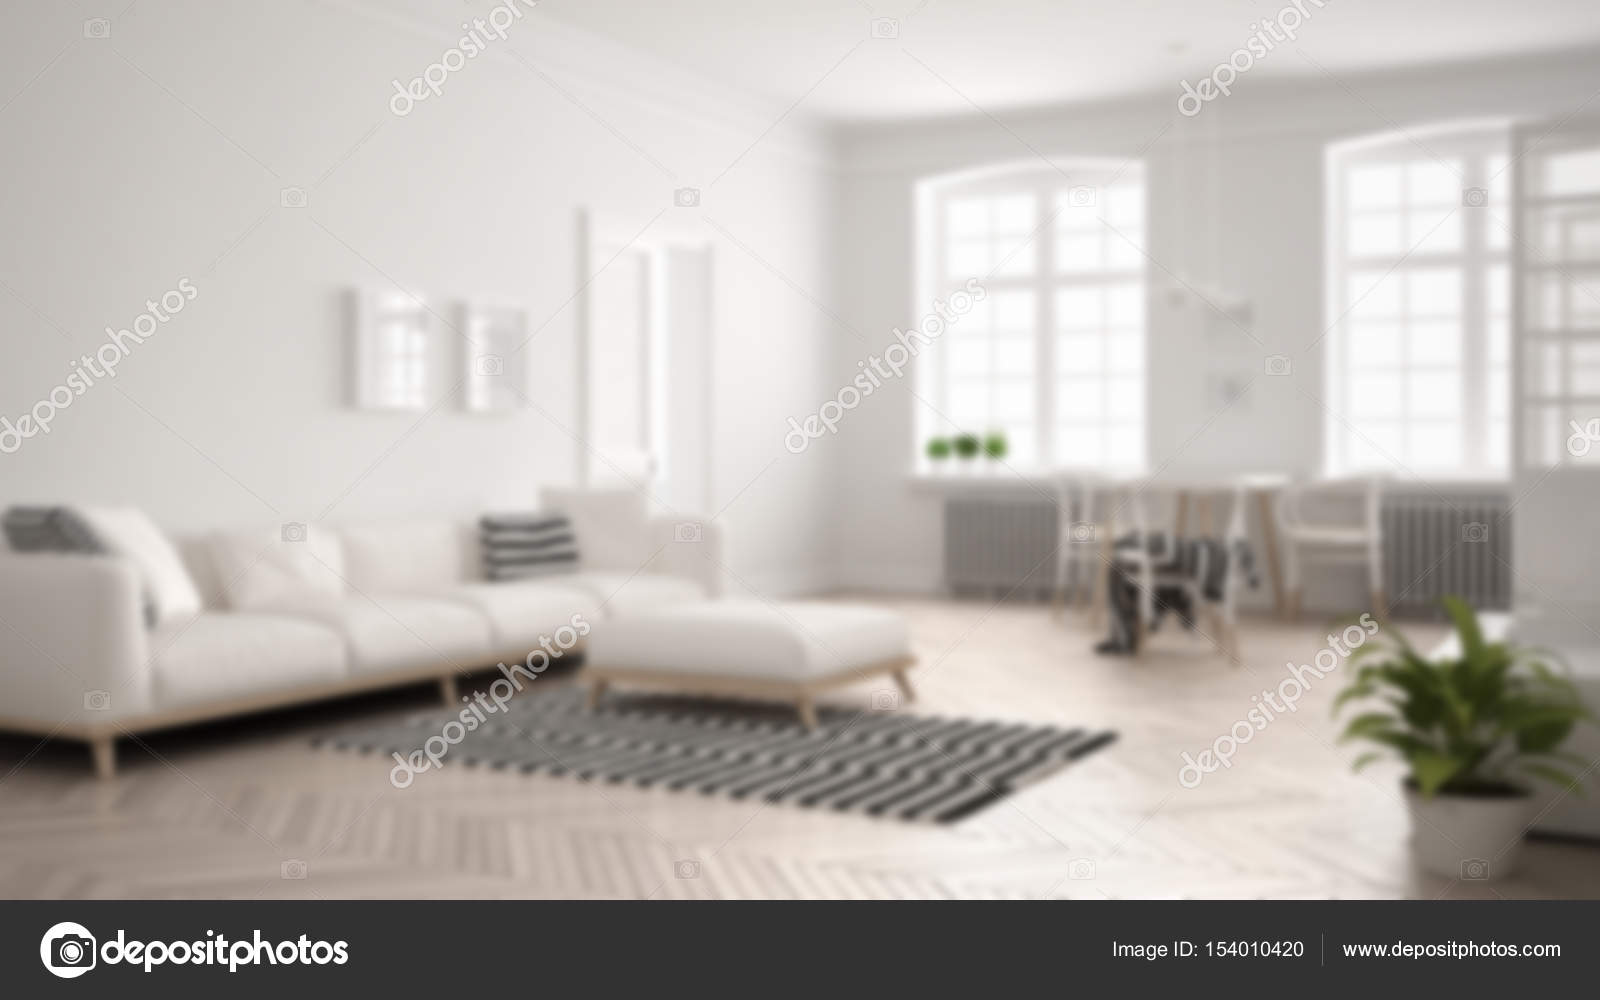 Blur background interior design, bright minimalist living room w ...